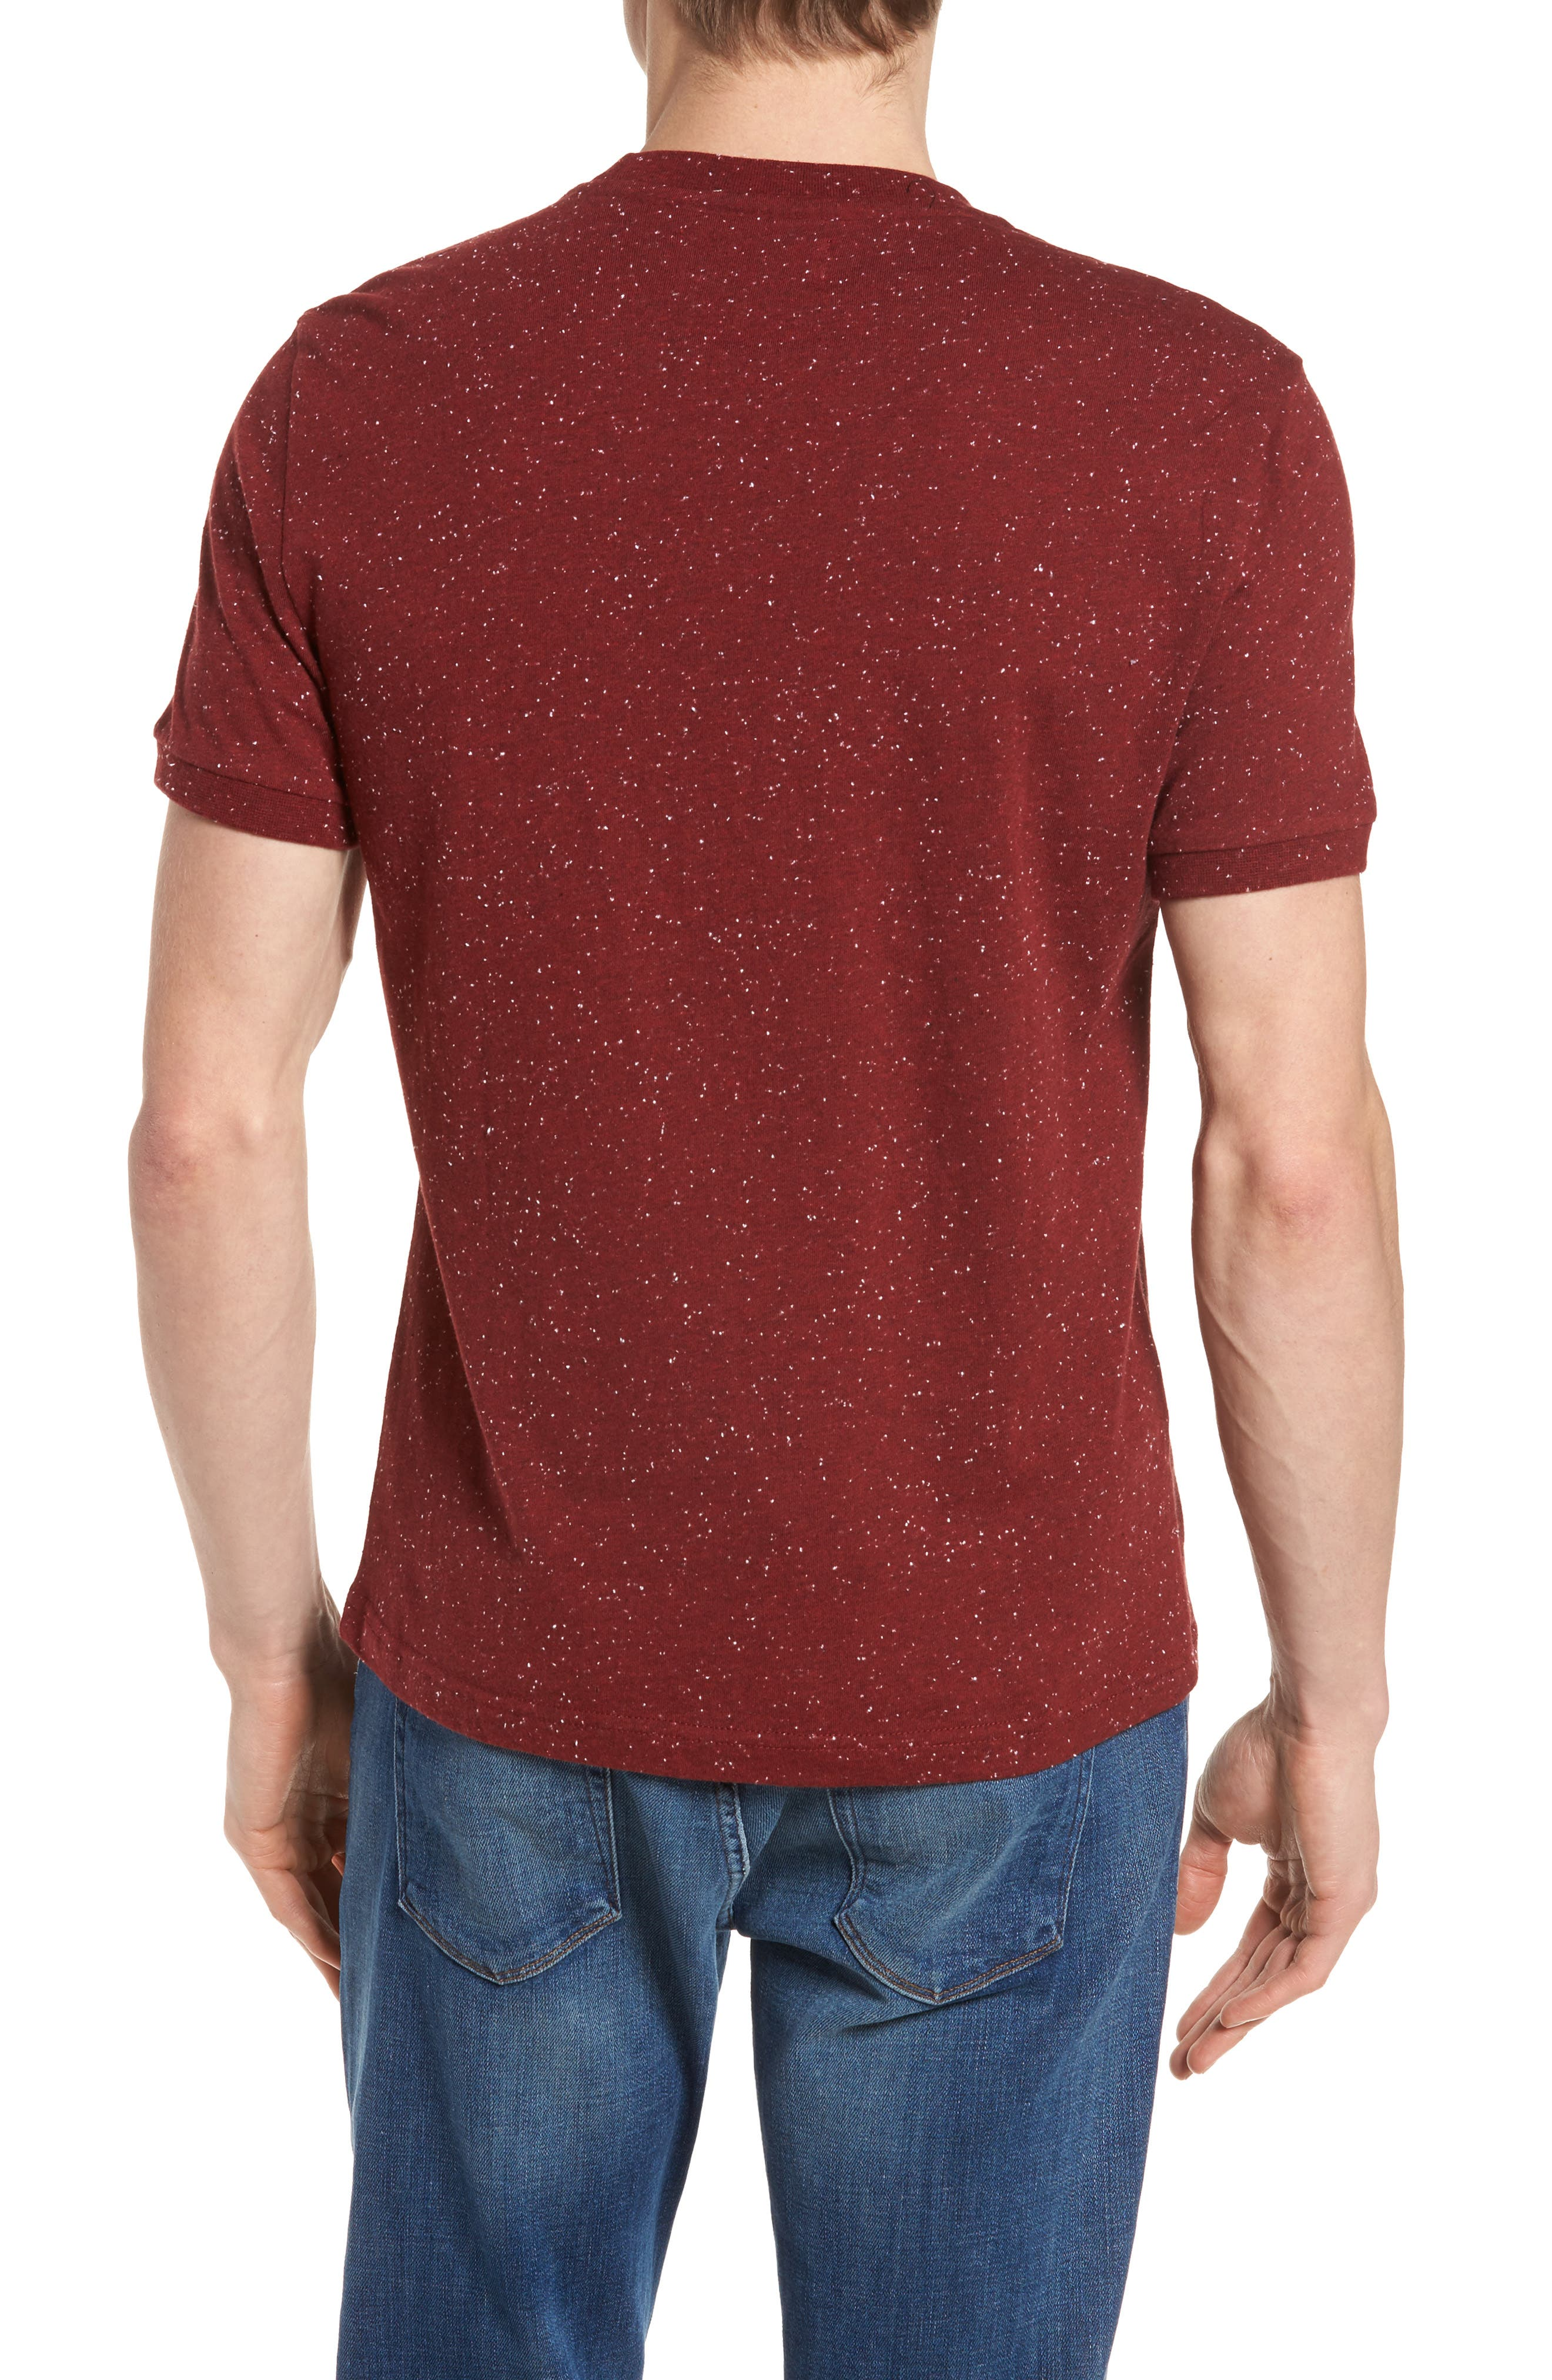 Nep Speckled T-Shirt,                             Alternate thumbnail 6, color,